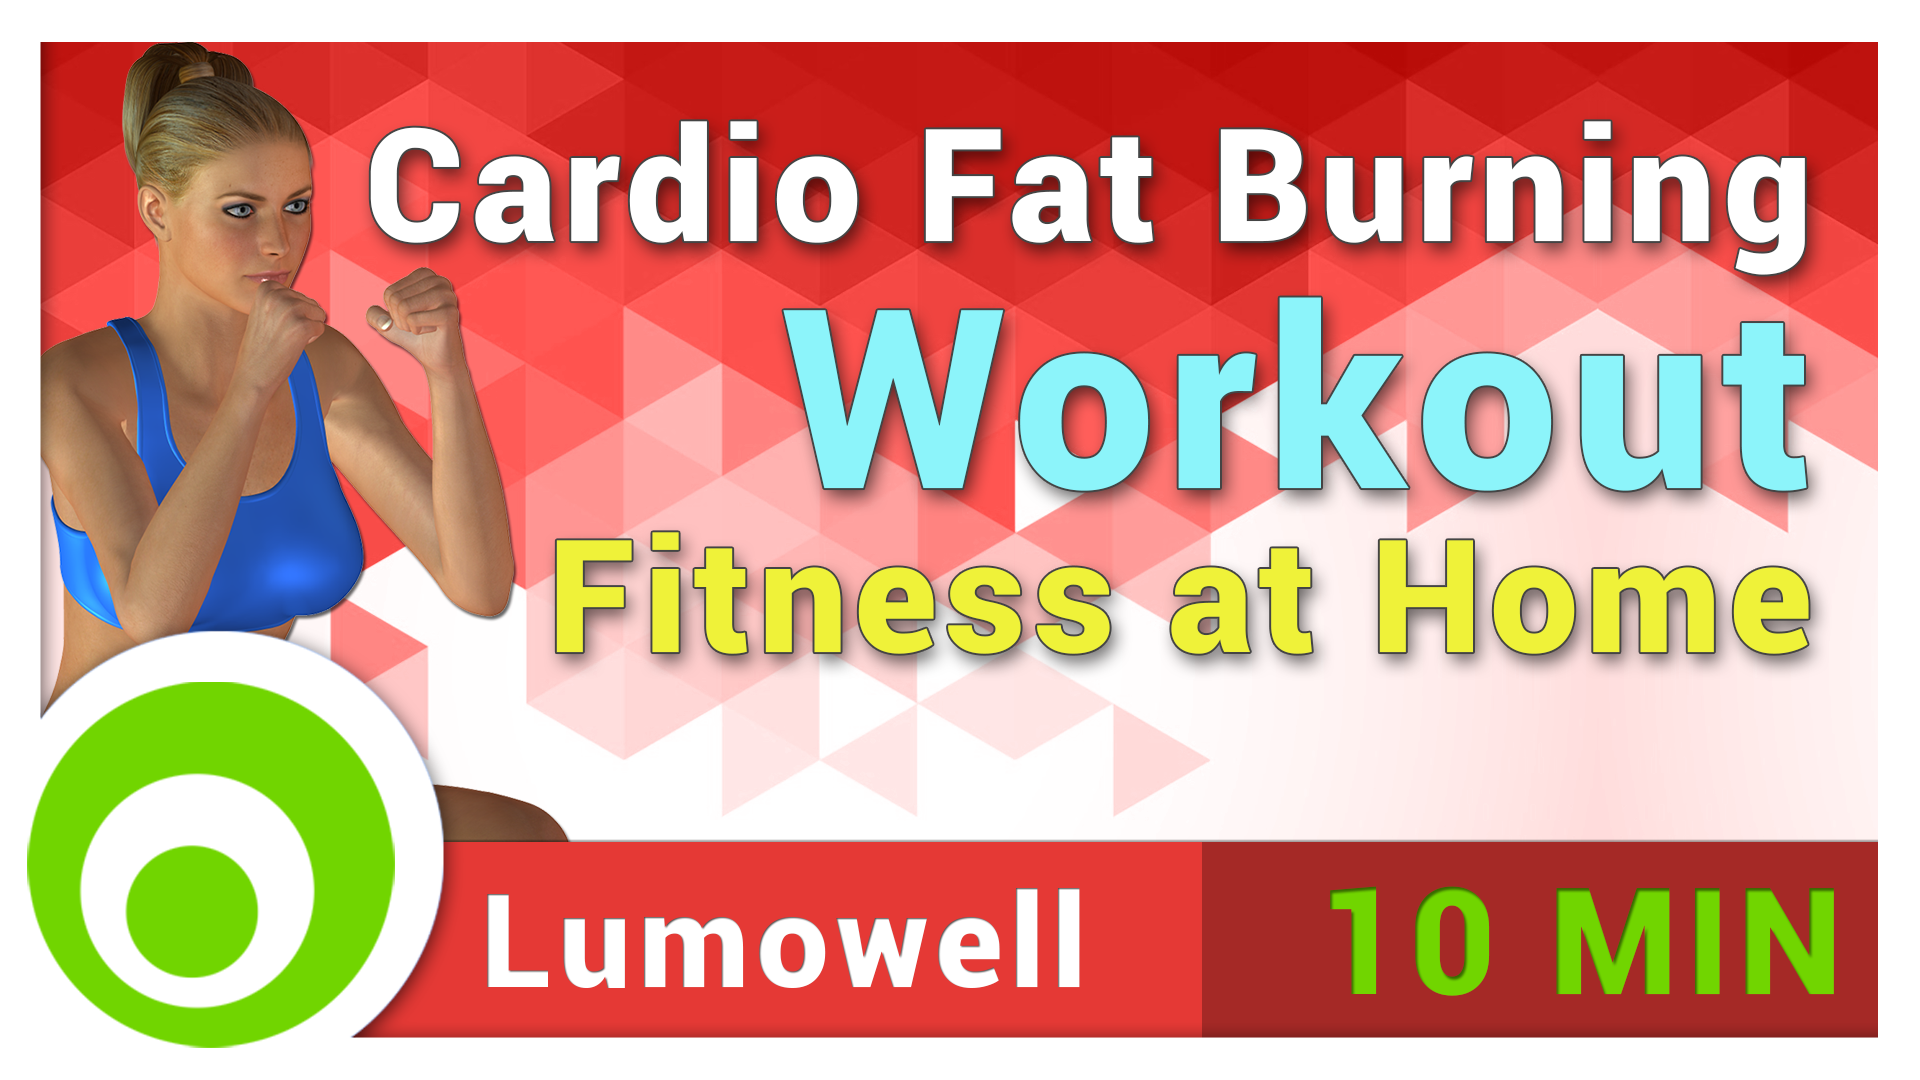 Cardio Fat Burning Workout - Fitness at Home